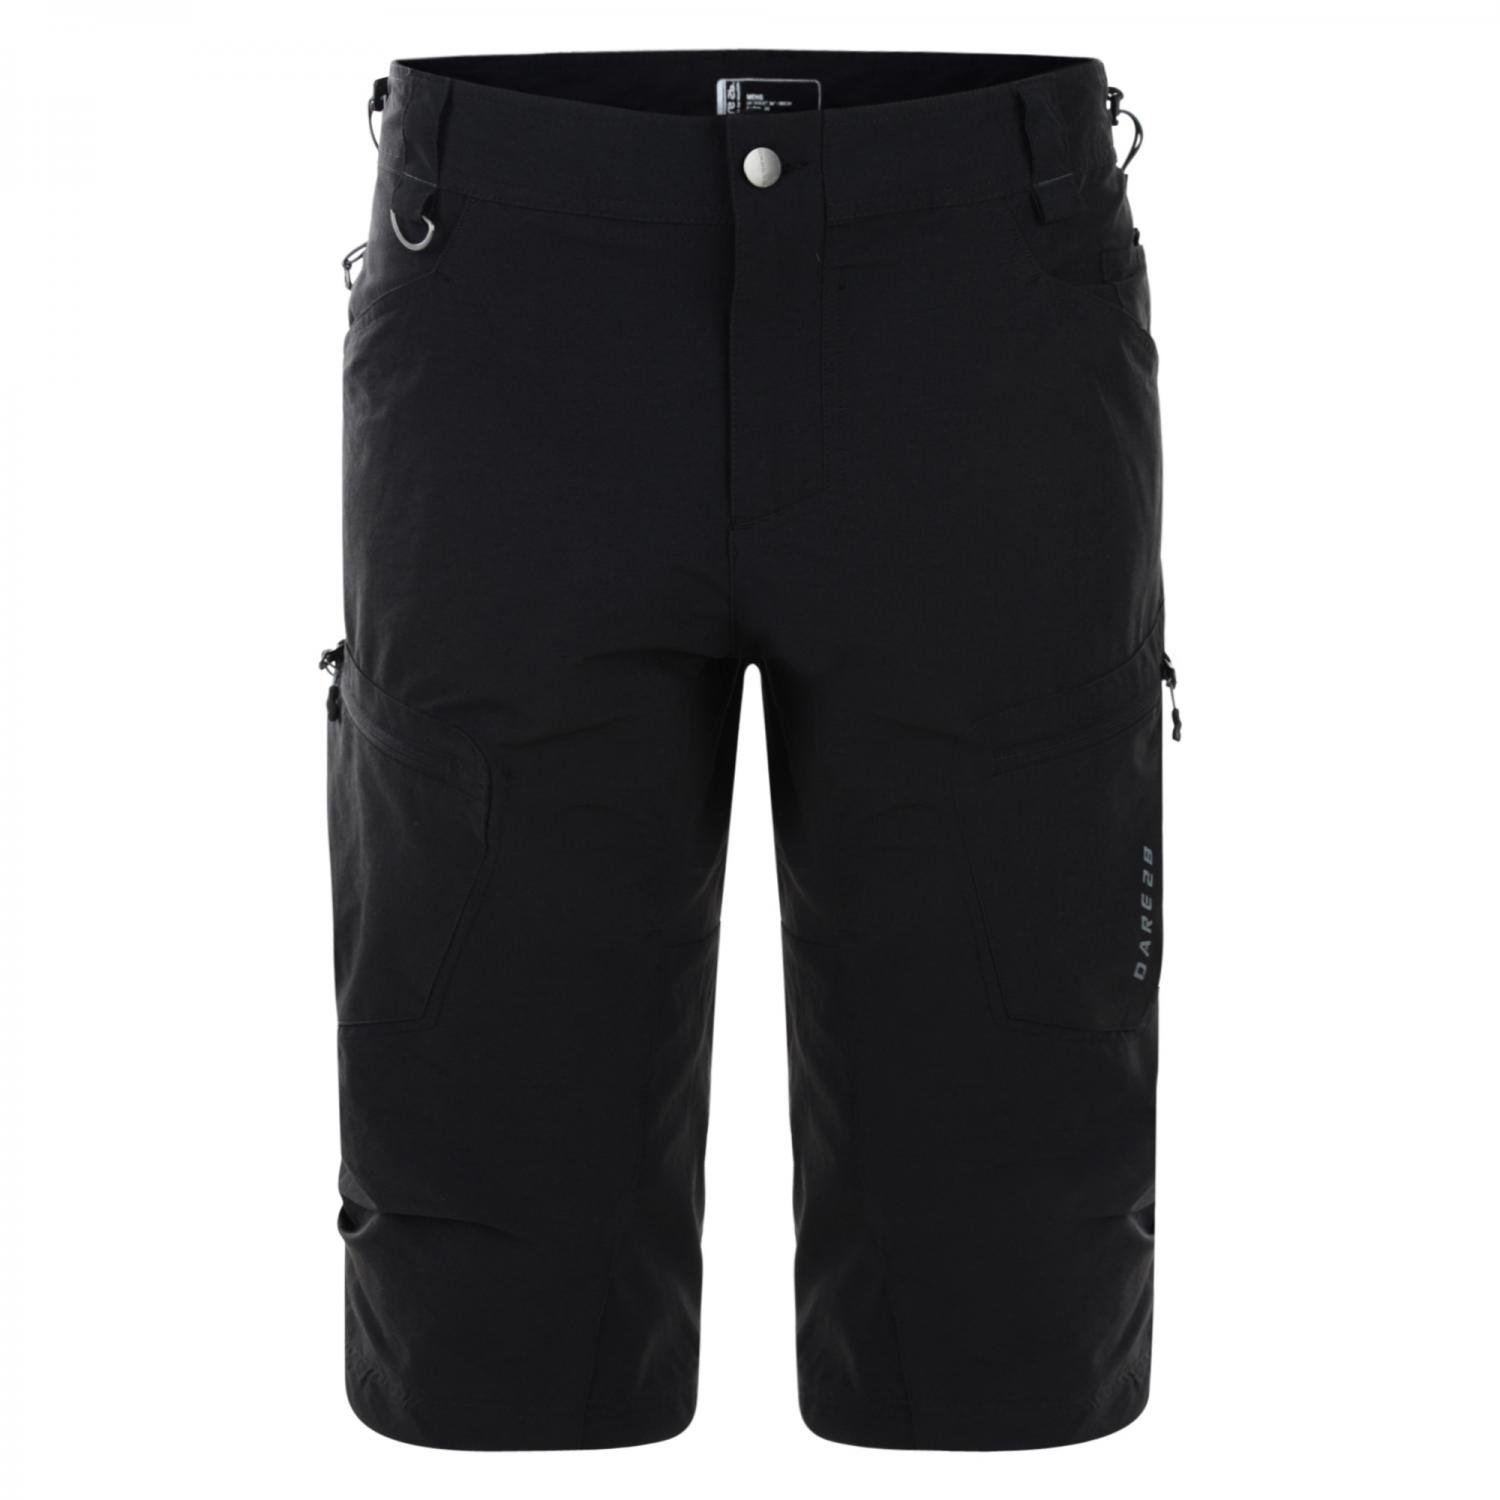 Dare 2b Mens Tuned In 3/4 Hiking Shorts UTRG1735_13